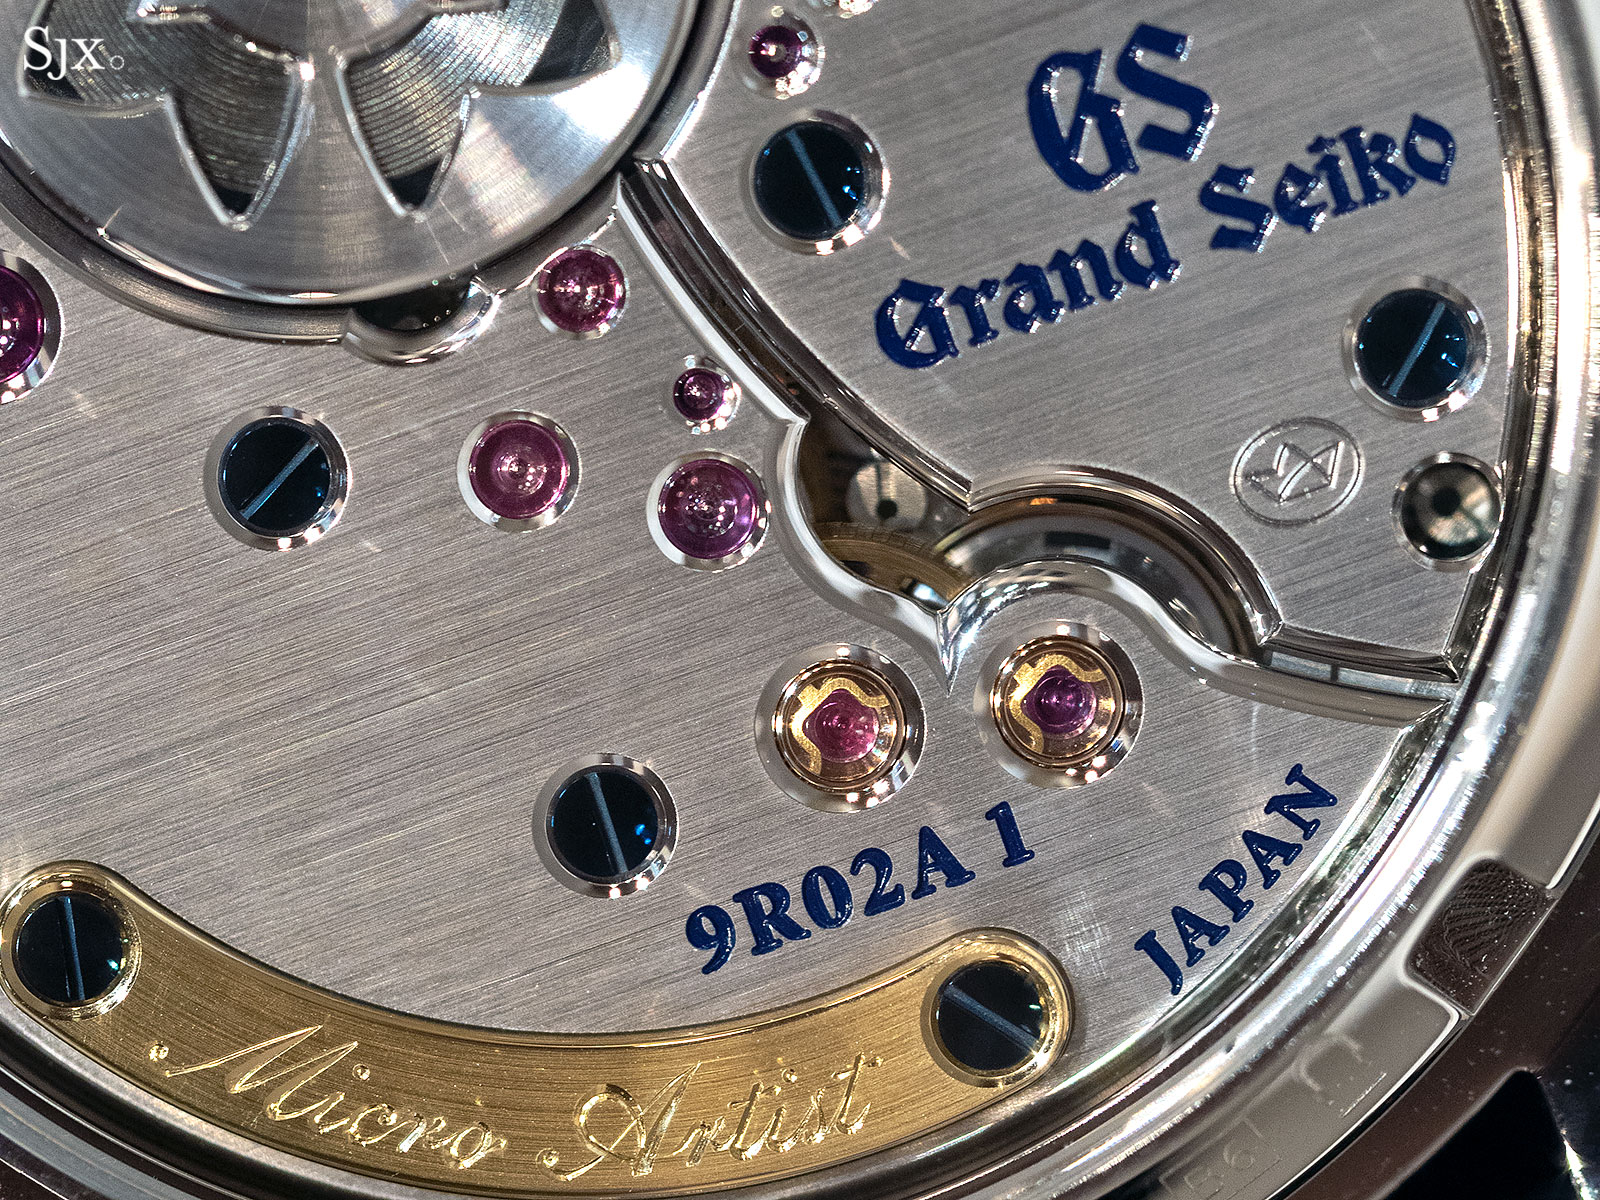 Grand Seiko Spring Drive 9R02 movement 9